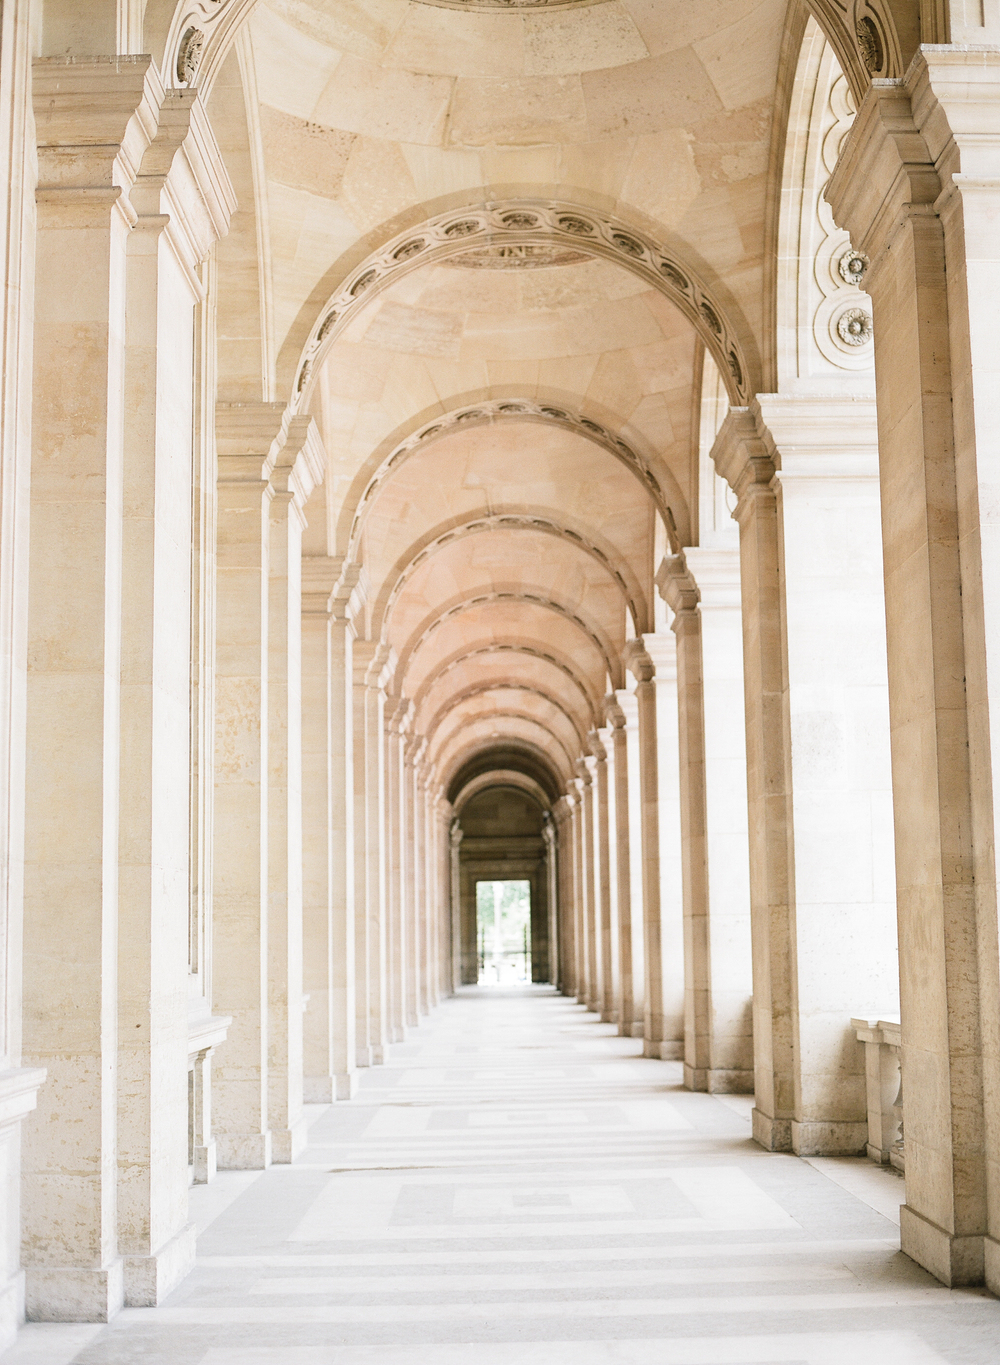 A perspective shot of an arched walkway in the Louvre; photo by Sylvie GIl